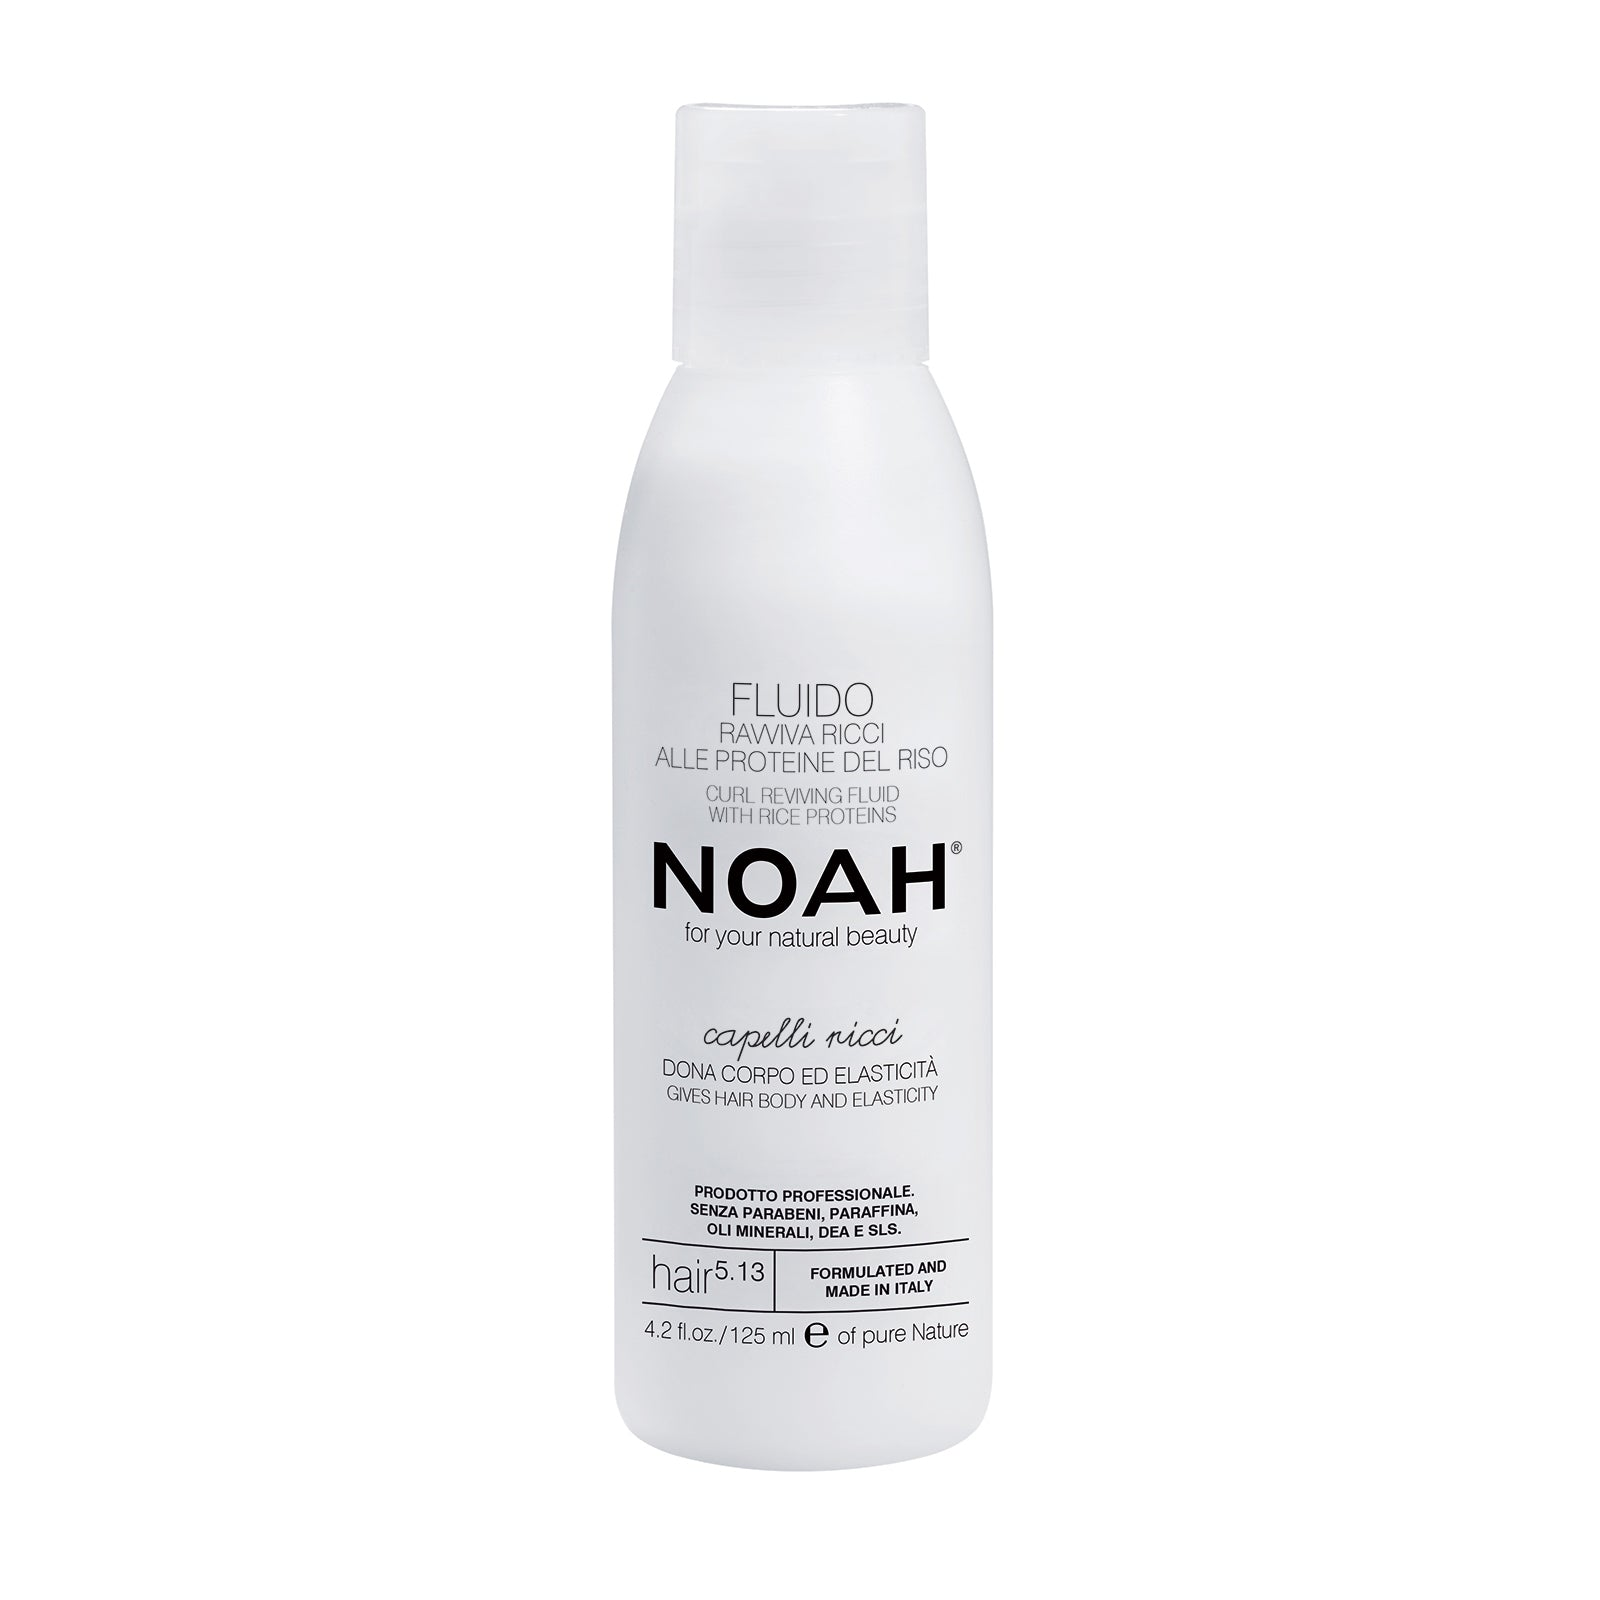 NOAH Curl reviving fluid gives hair body and elasticity- KIHARAA UUDISTAVA NESTE.